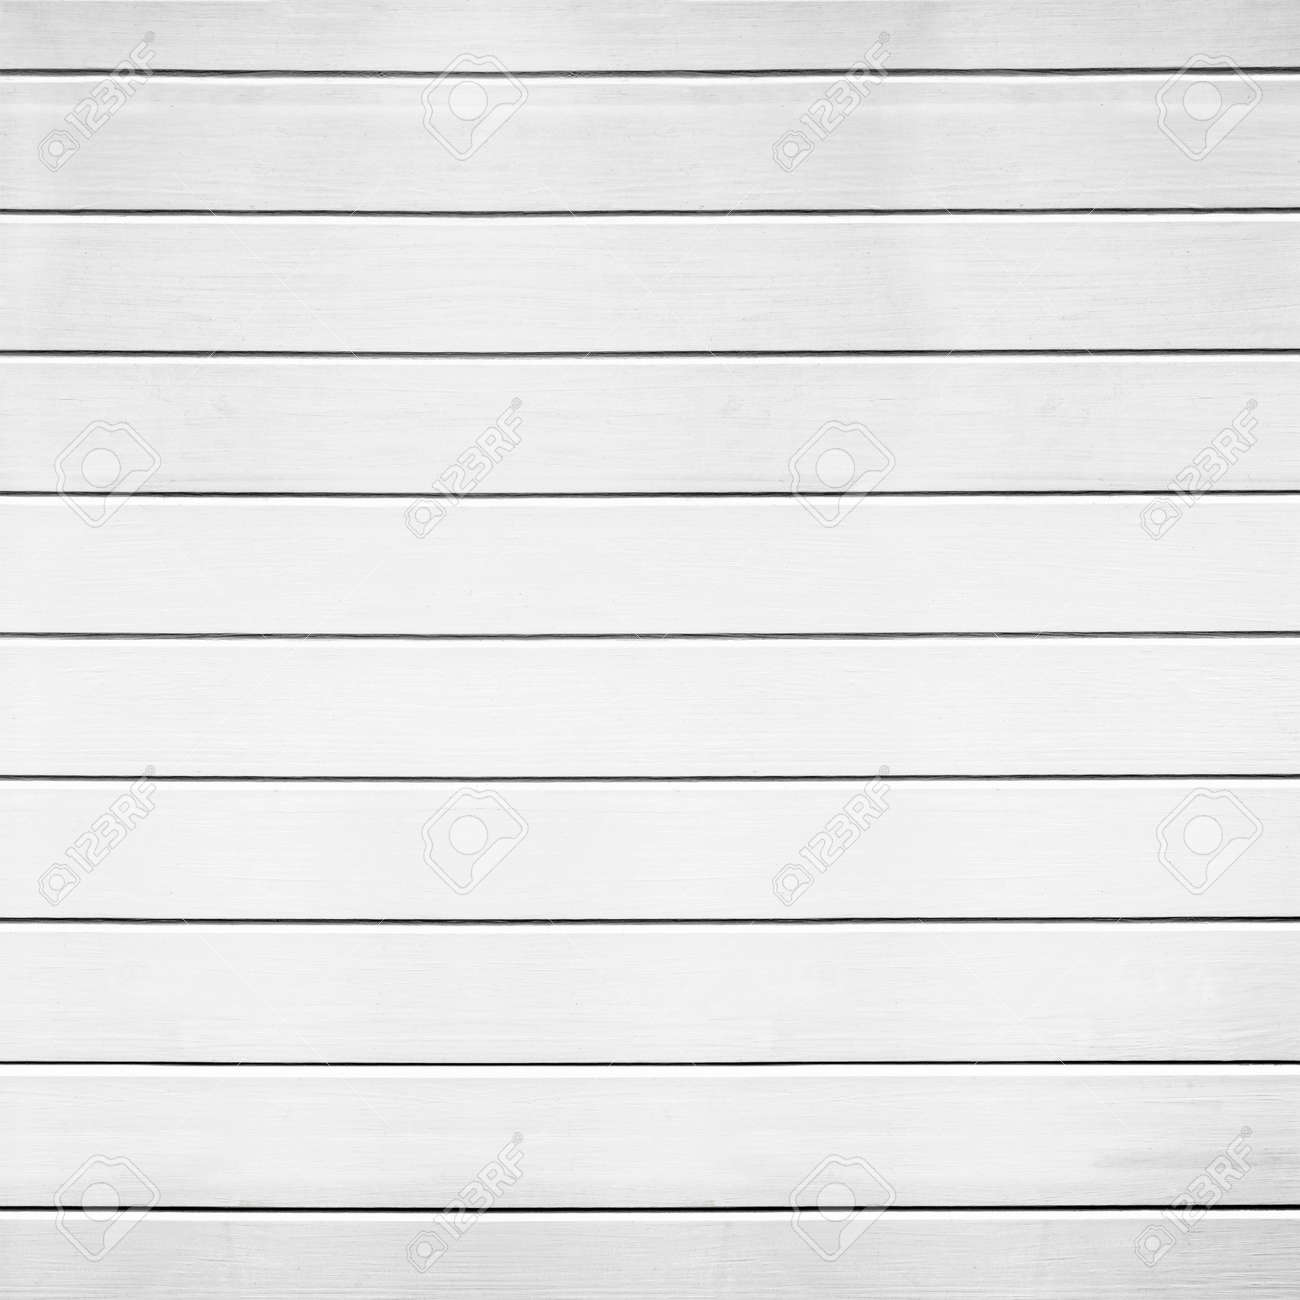 White wood panel background. Stock Photo - 32575749 - White Wood Panel Background. Stock Photo, Picture And Royalty Free